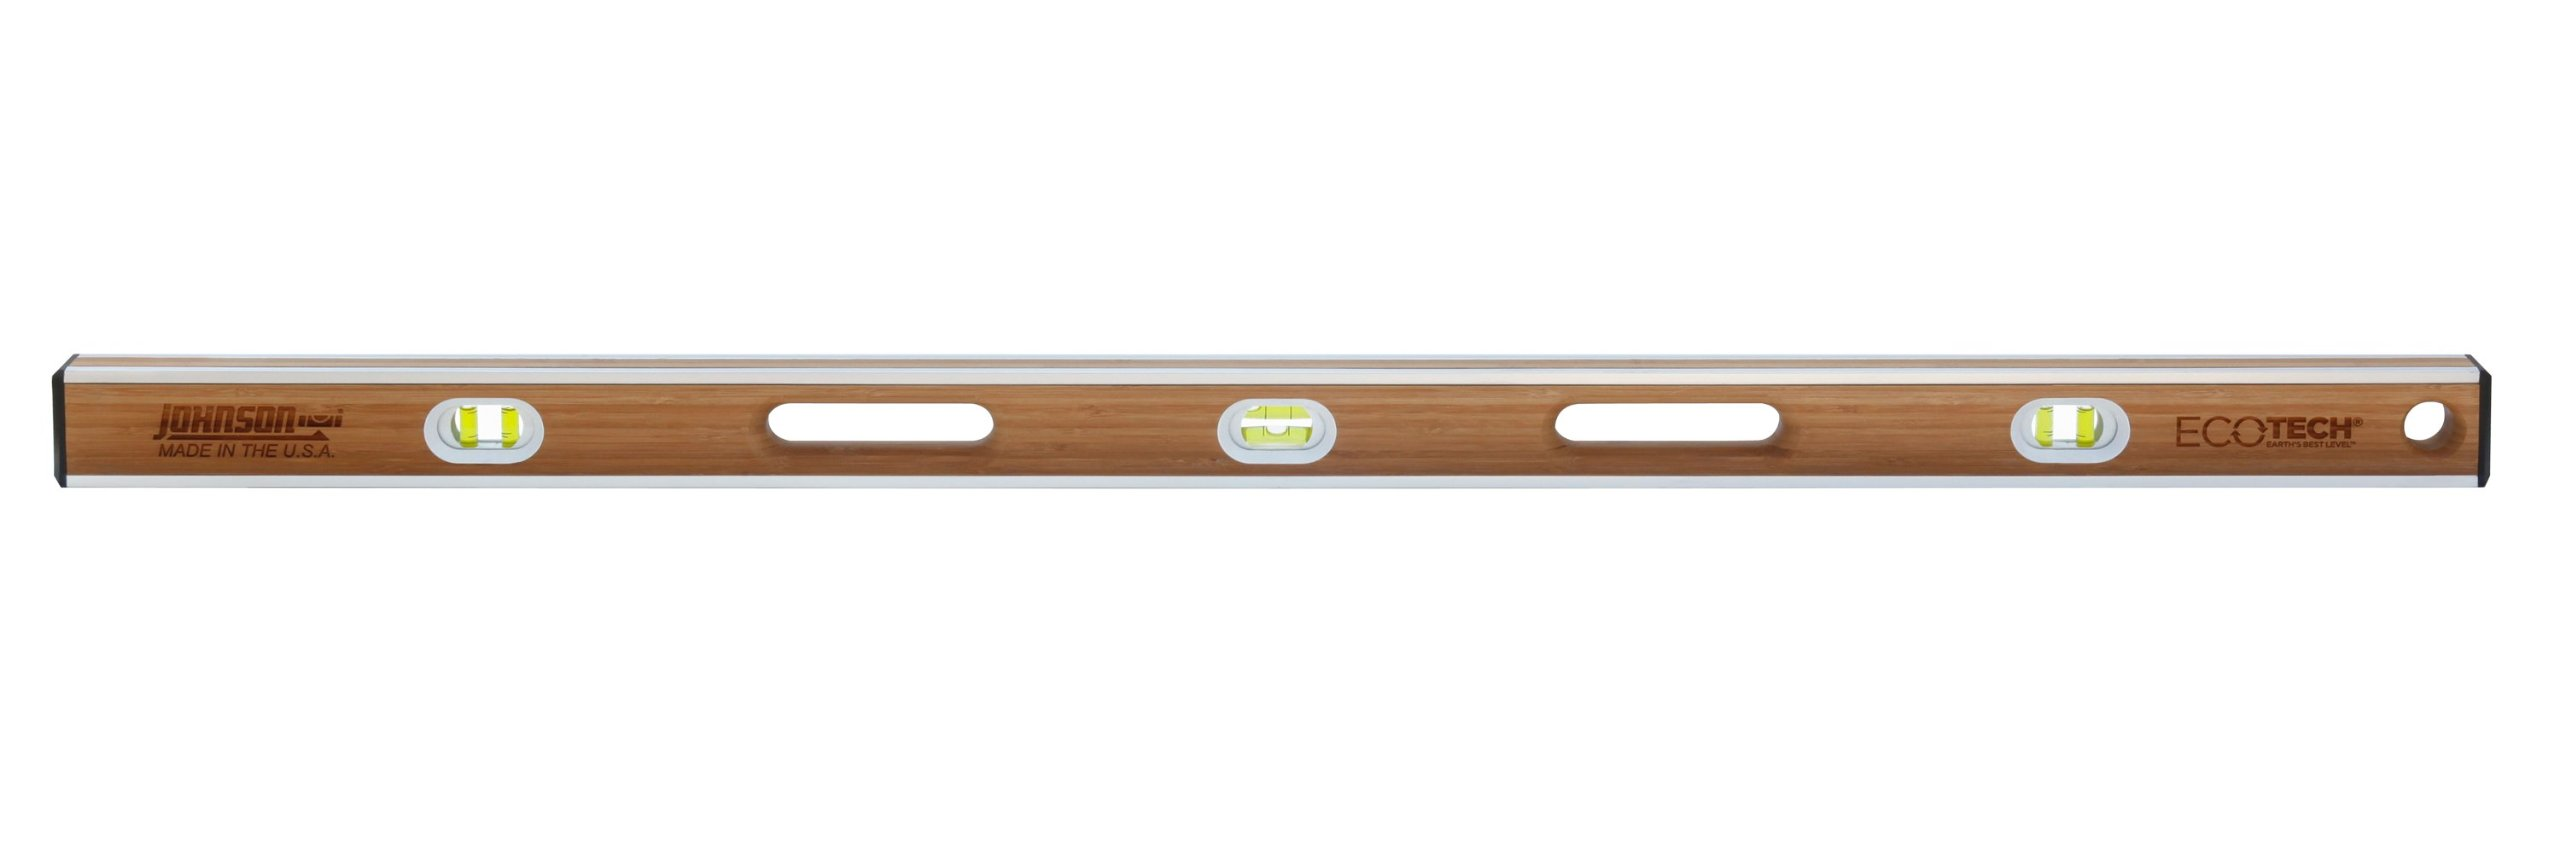 Johnson Level 1600-4800 48-Inch Eco-Tech Bamboo Level, Brown by Johnson Level (Image #1)